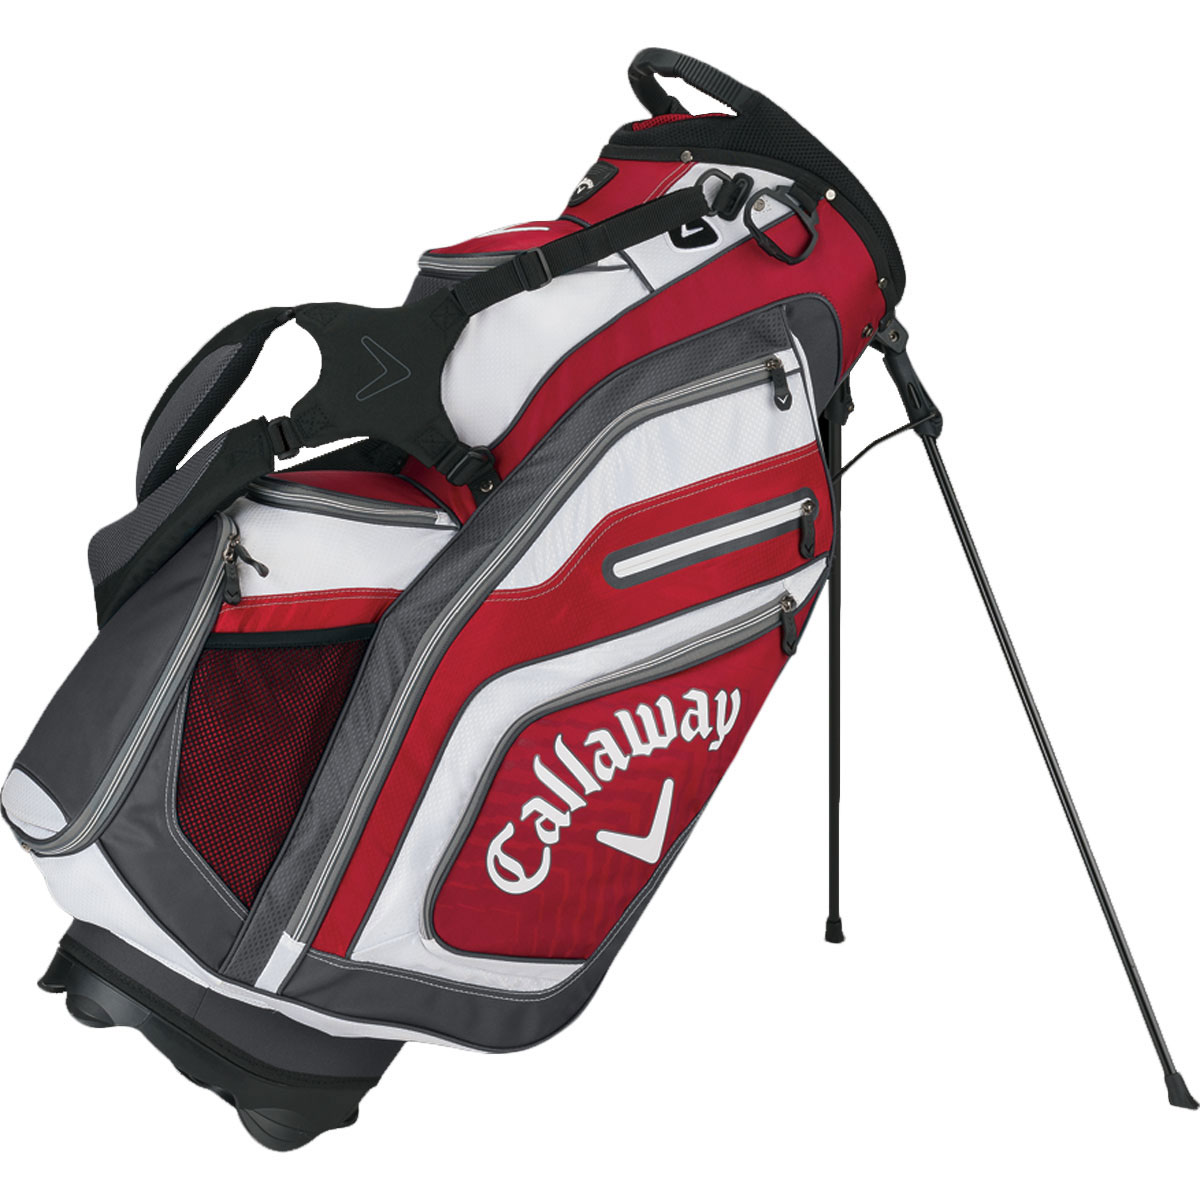 7 way golf stand bag 0v between hot and neutral callaway 2015 chev org carry 14